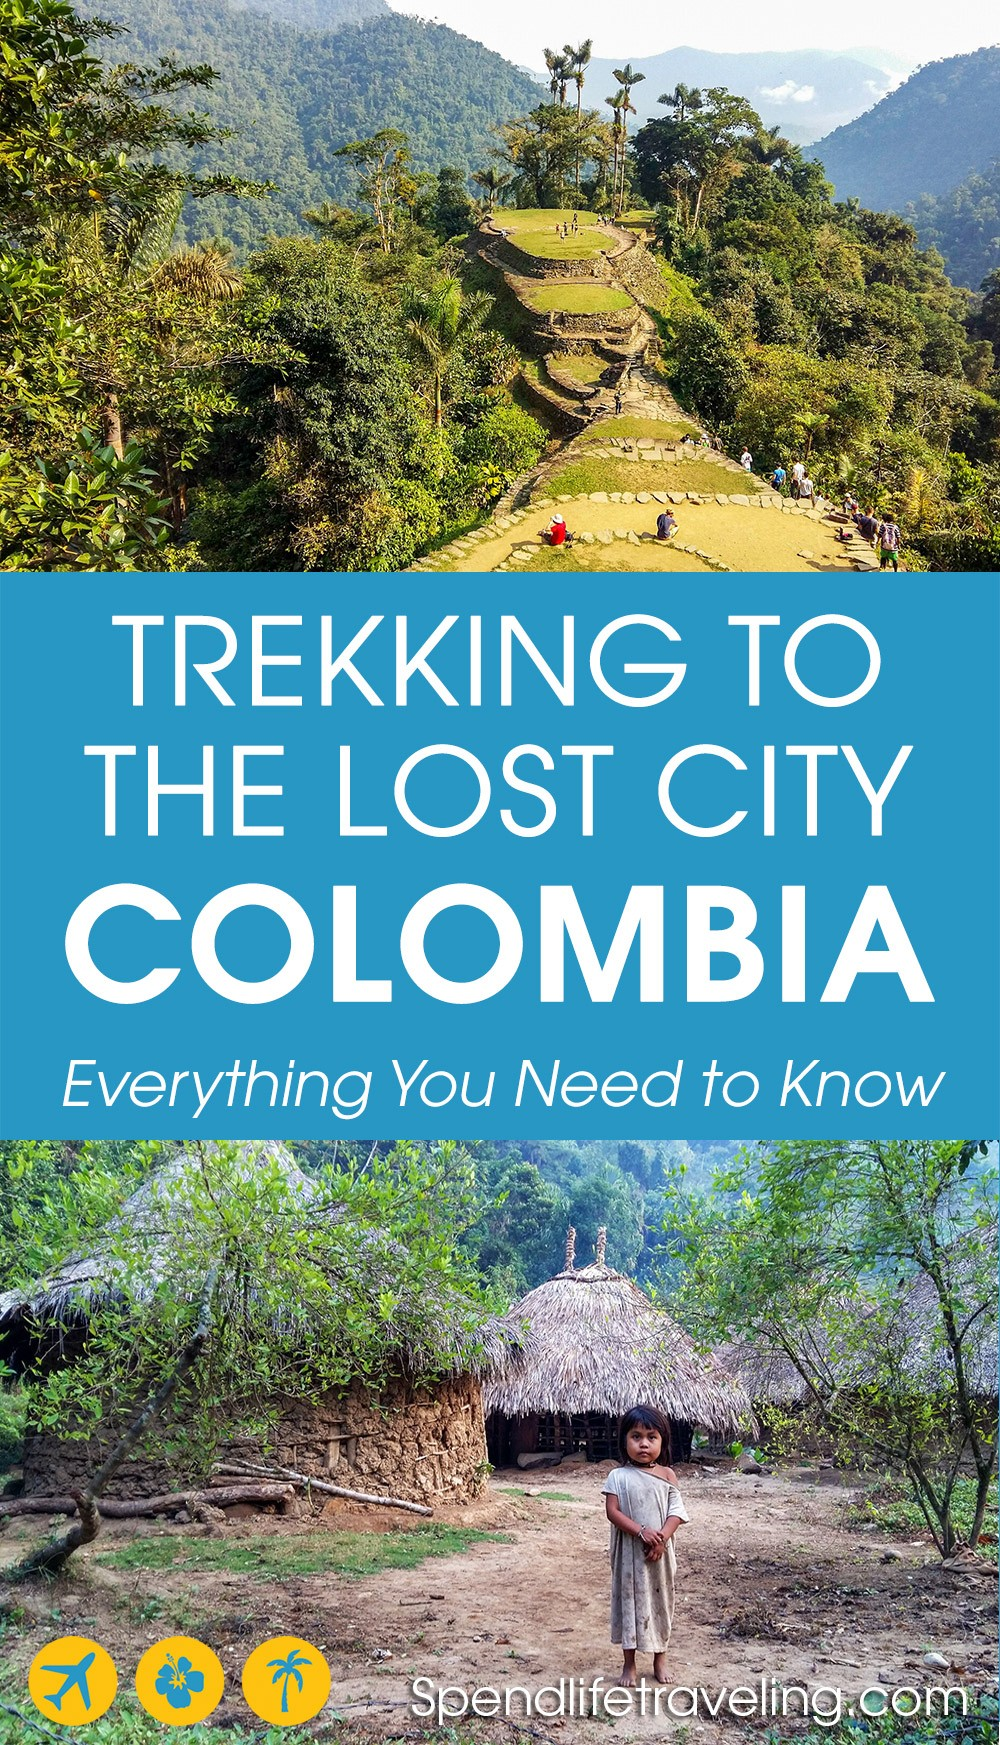 A complete guide to trekking to the Lost City (Ciudad Perdida) in Colombia